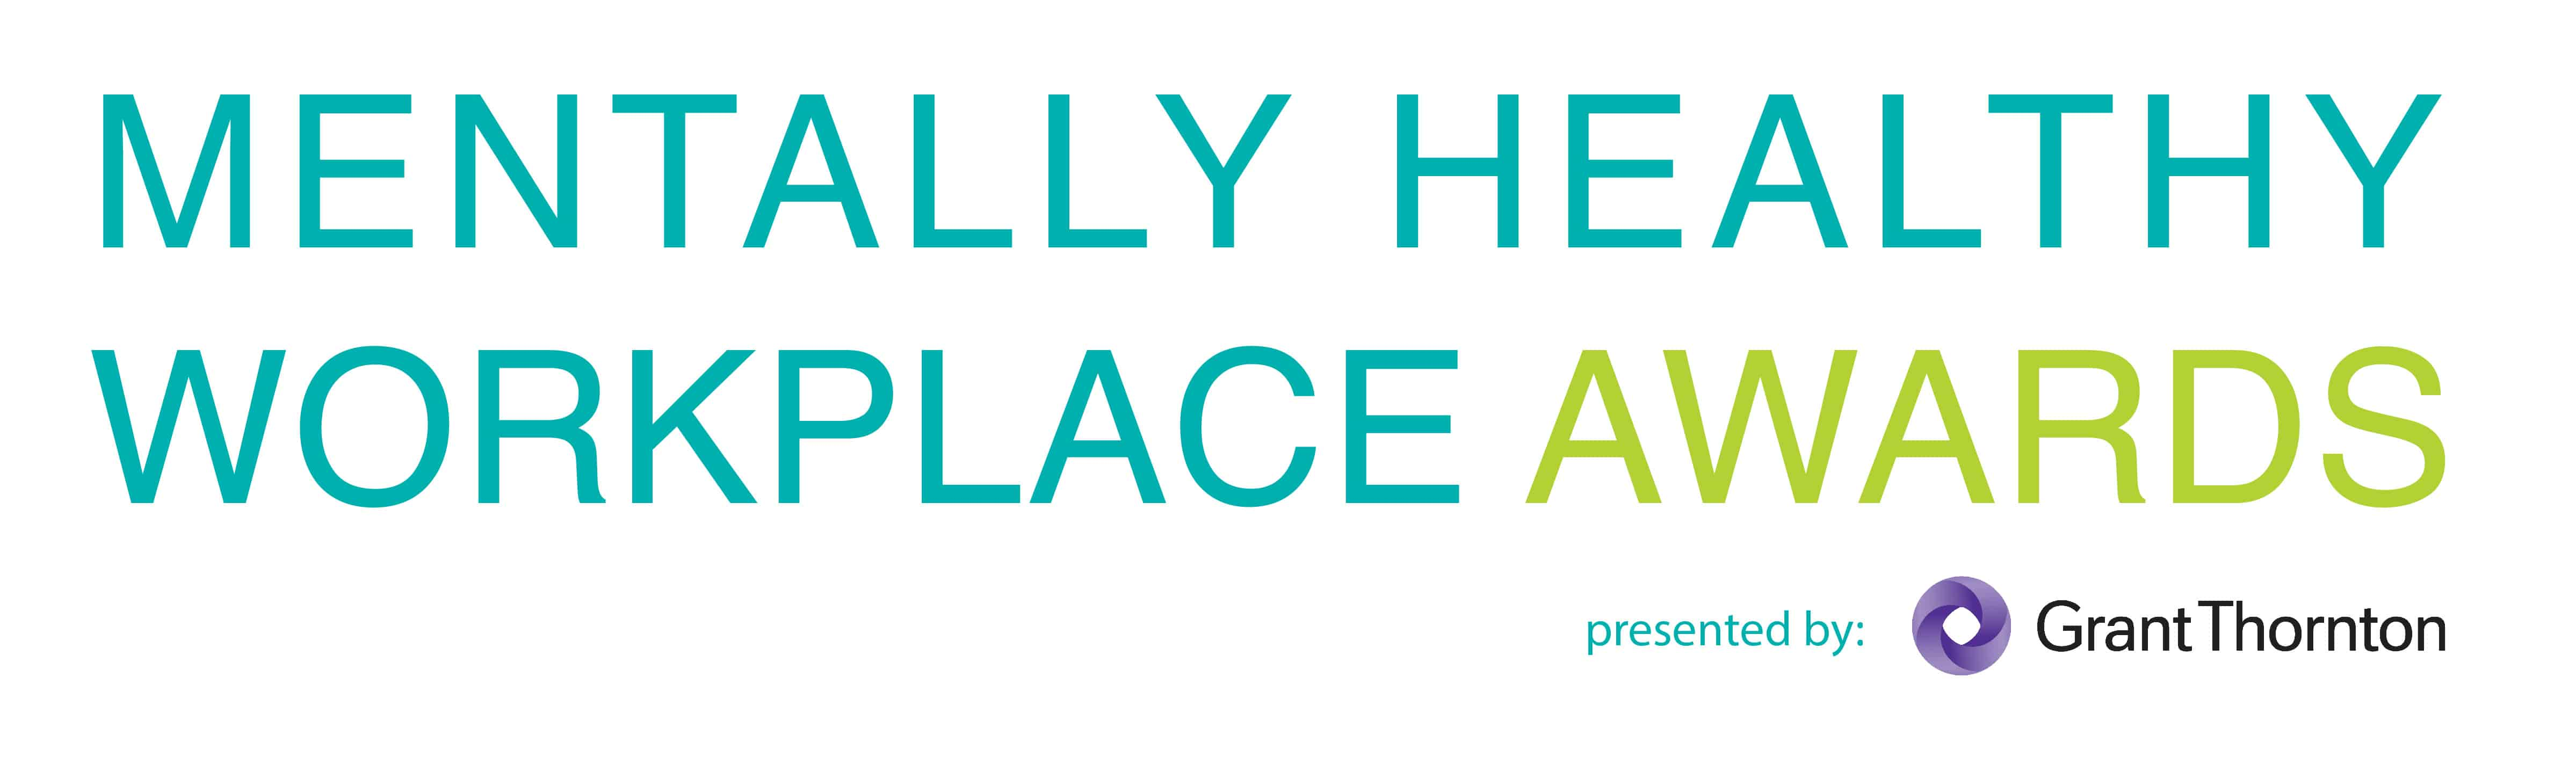 Mentally healthy workplace awards with sponsor grant thorton (logo)